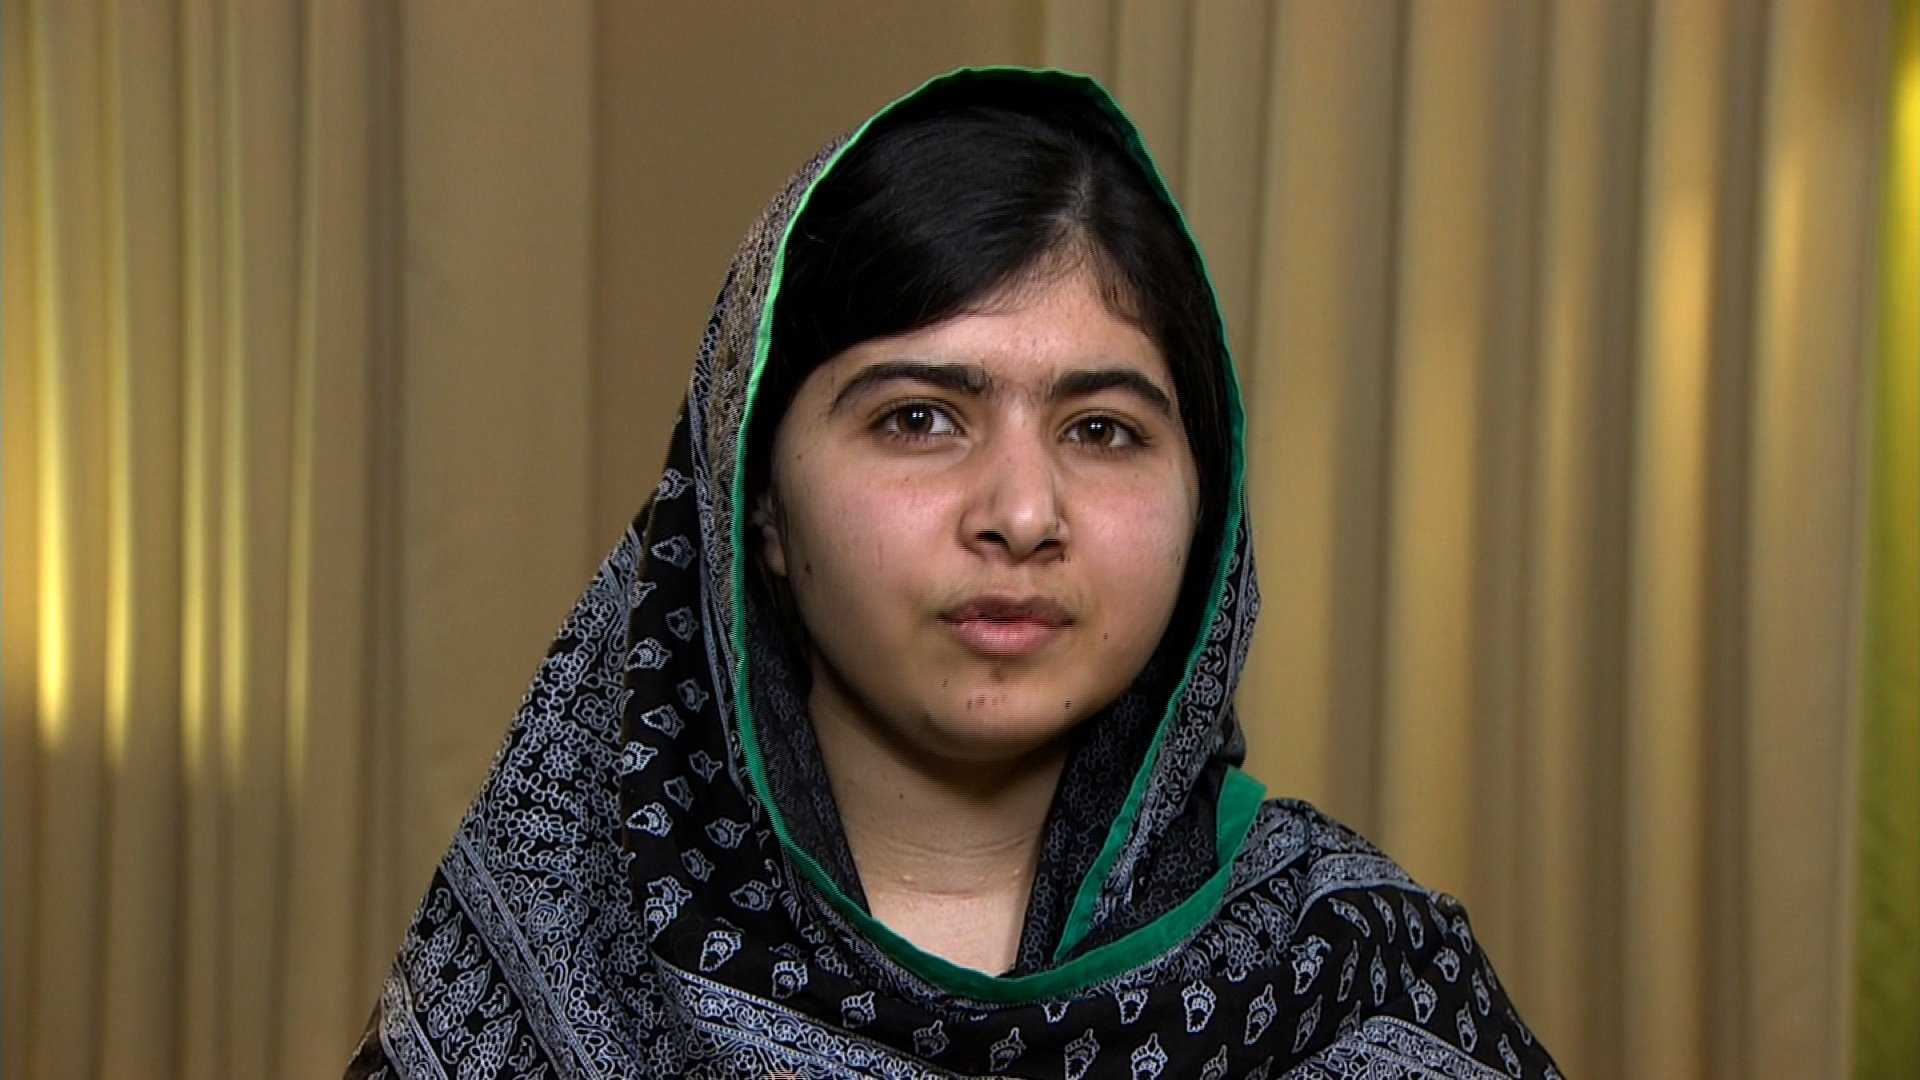 Apple, Malala Fund join forces to support girls' education